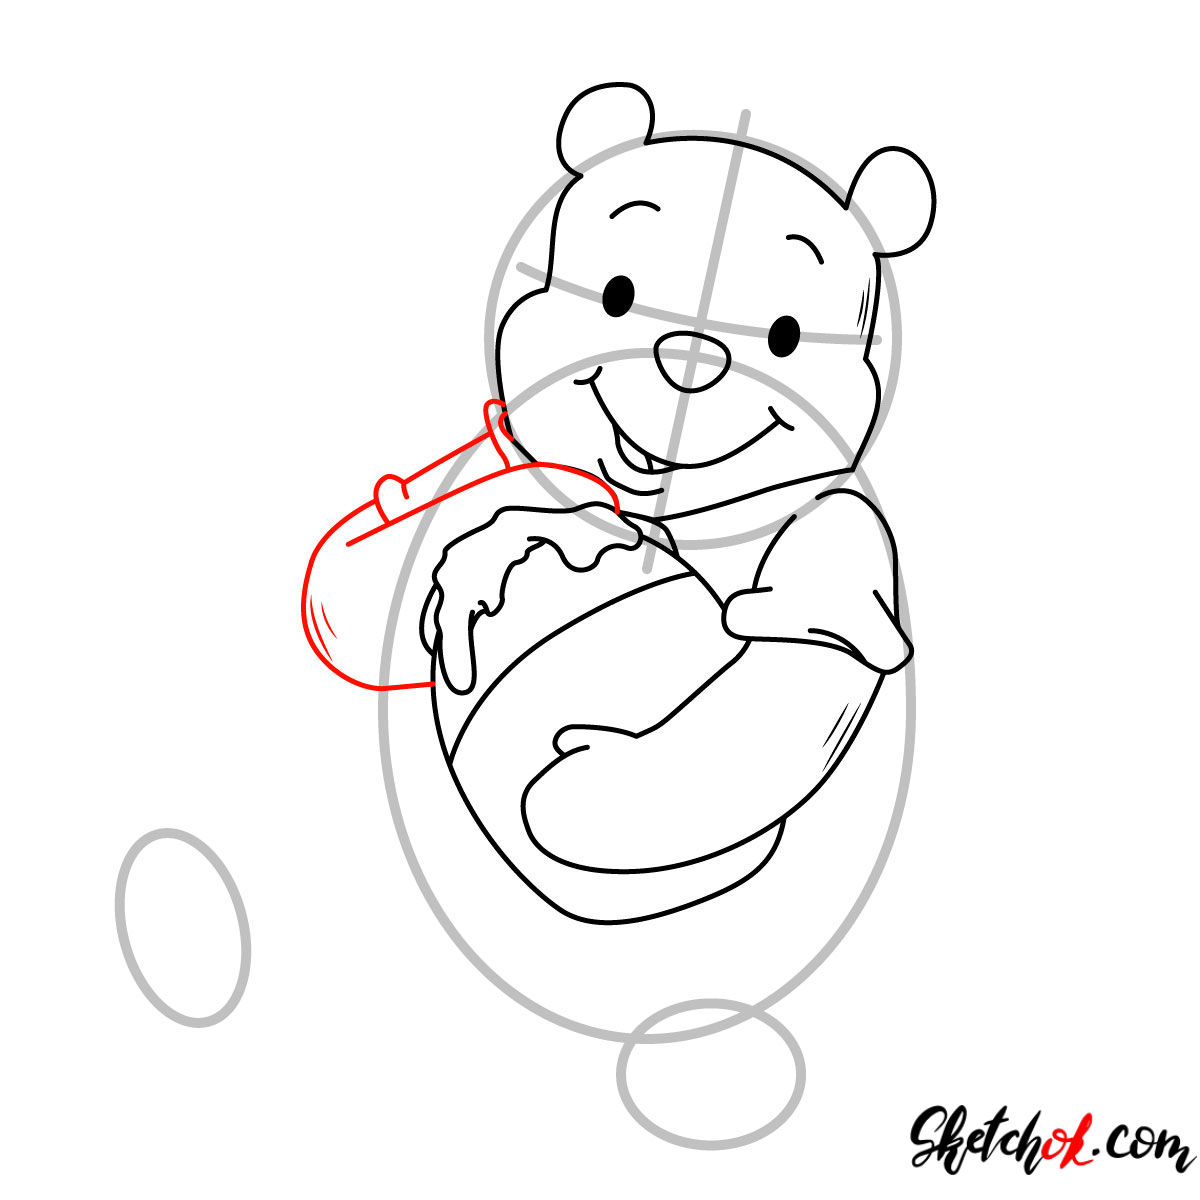 How to draw Winnie-the-Pooh eating honey - step 06